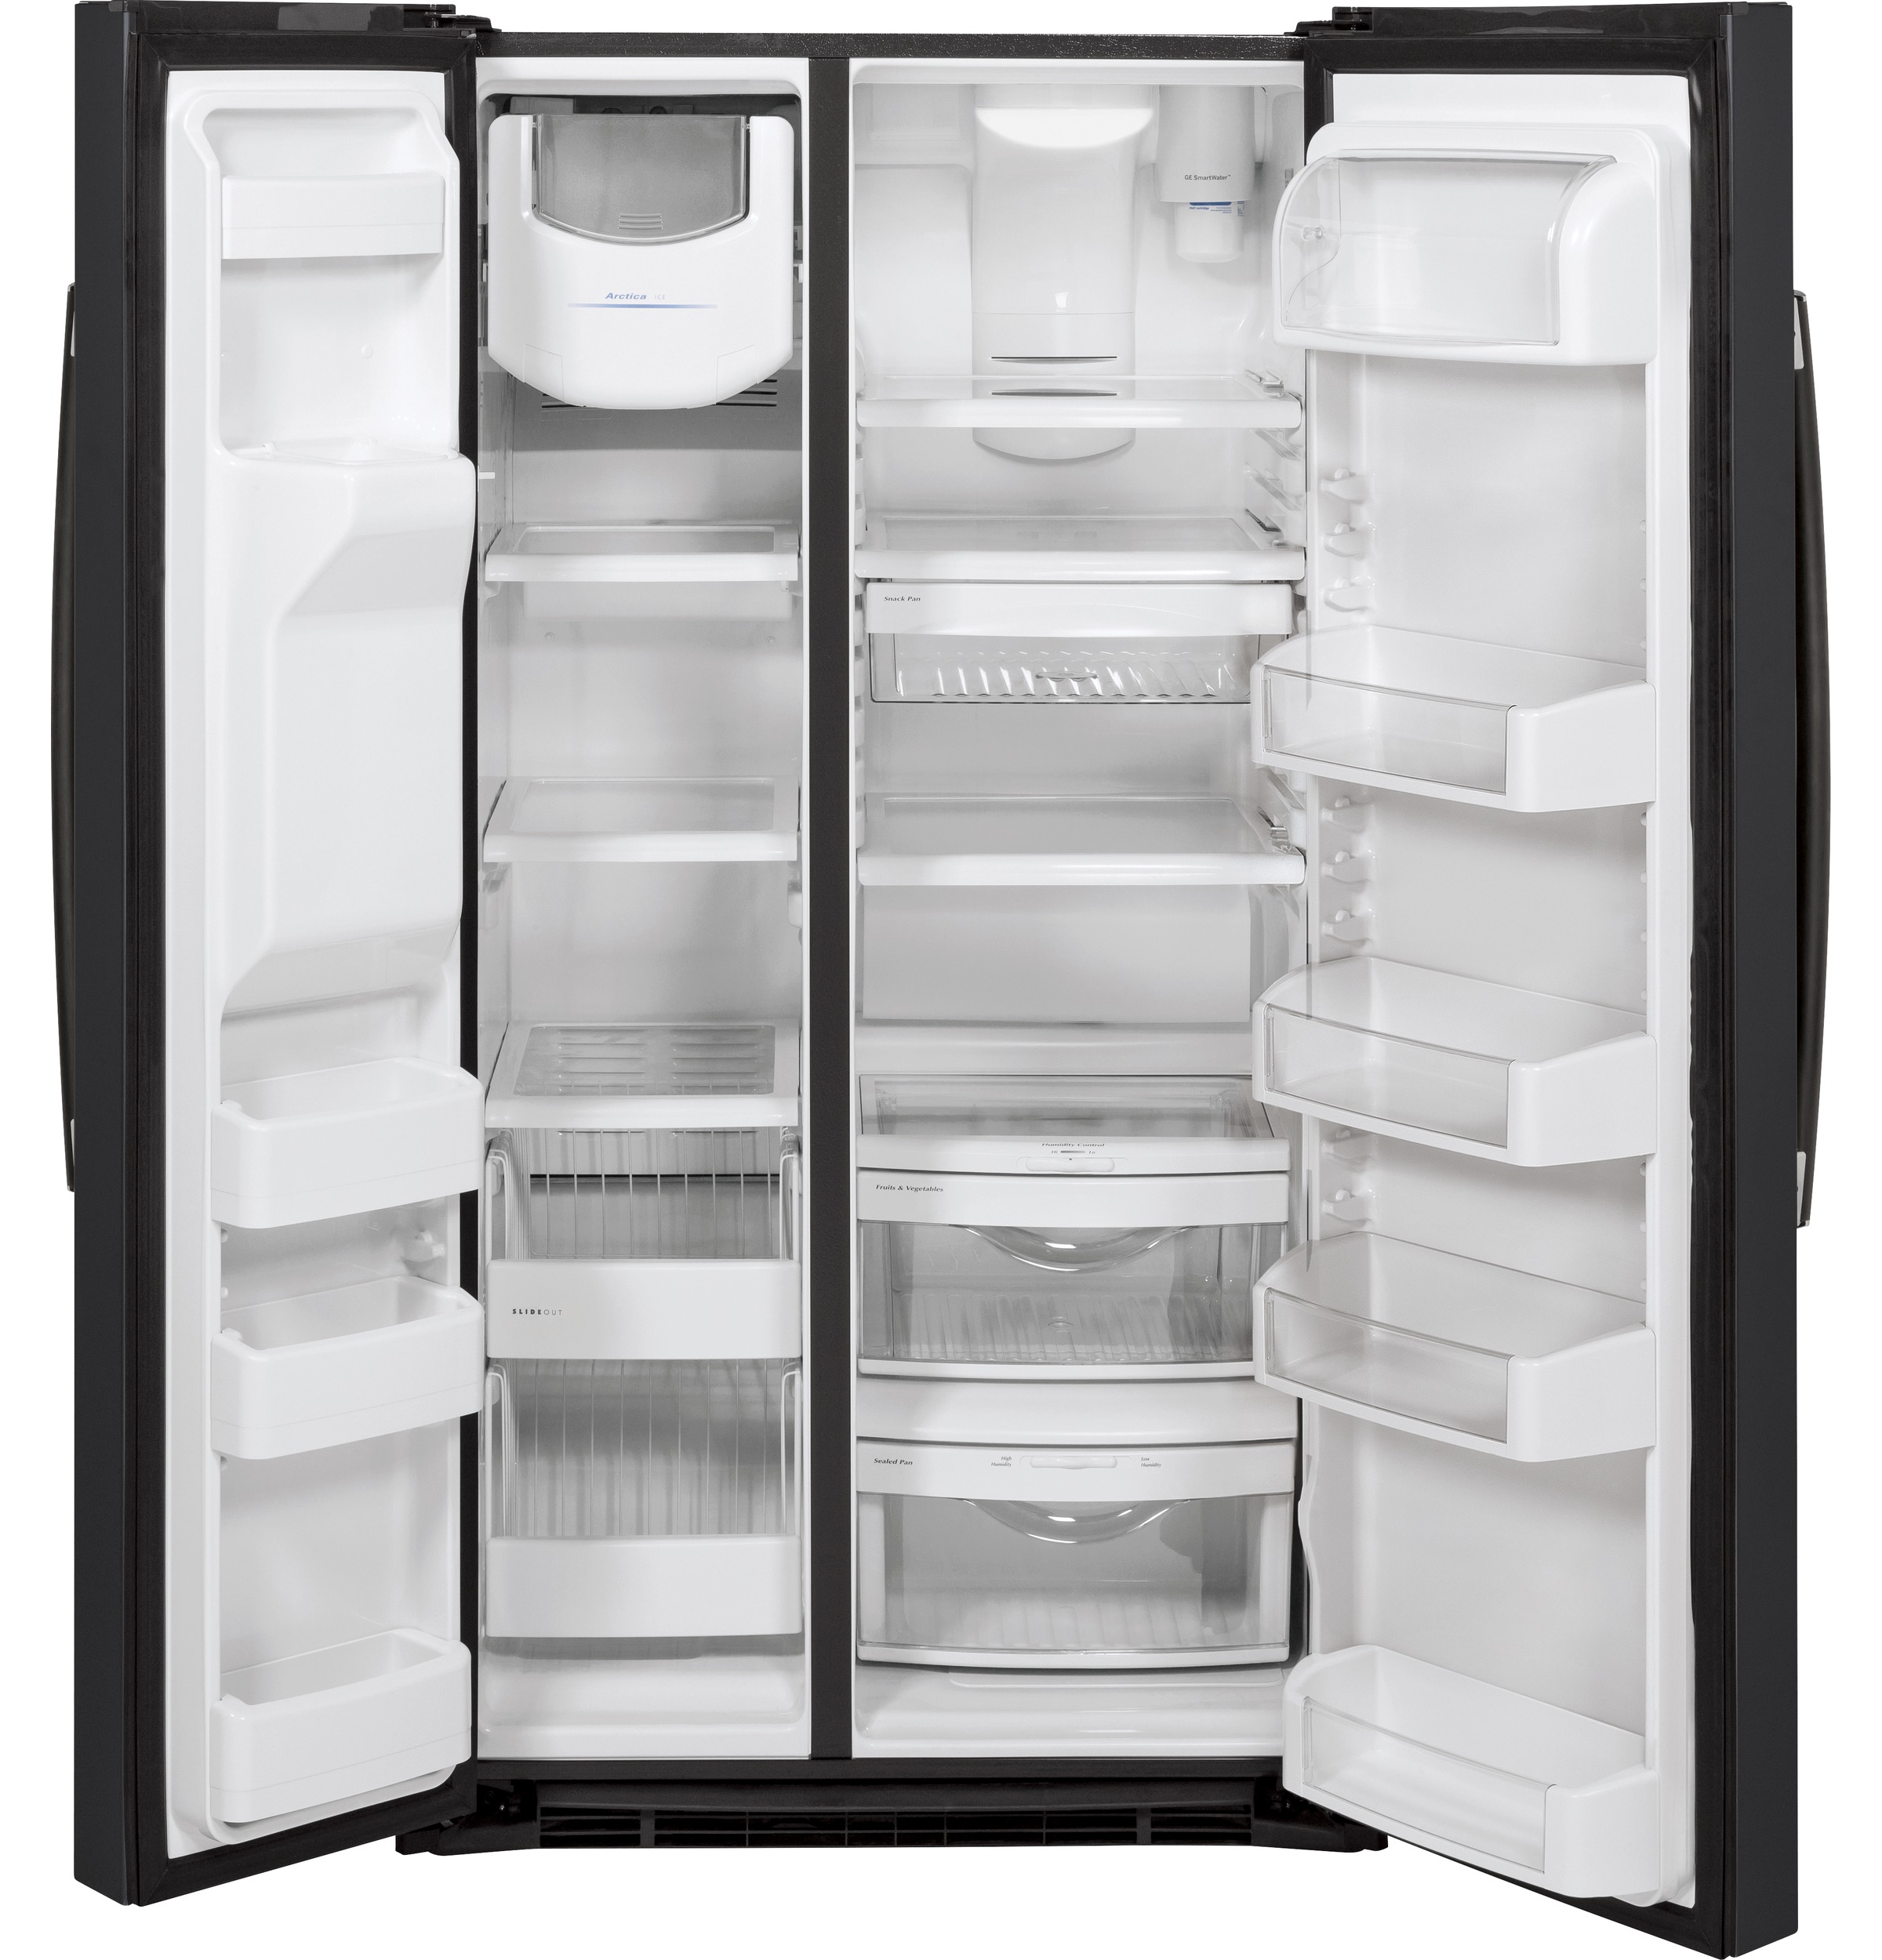 Model: GSE25HEMDS | GE® ENERGY STAR® 25.3 Cu. Ft. Side-By-Side Refrigerator